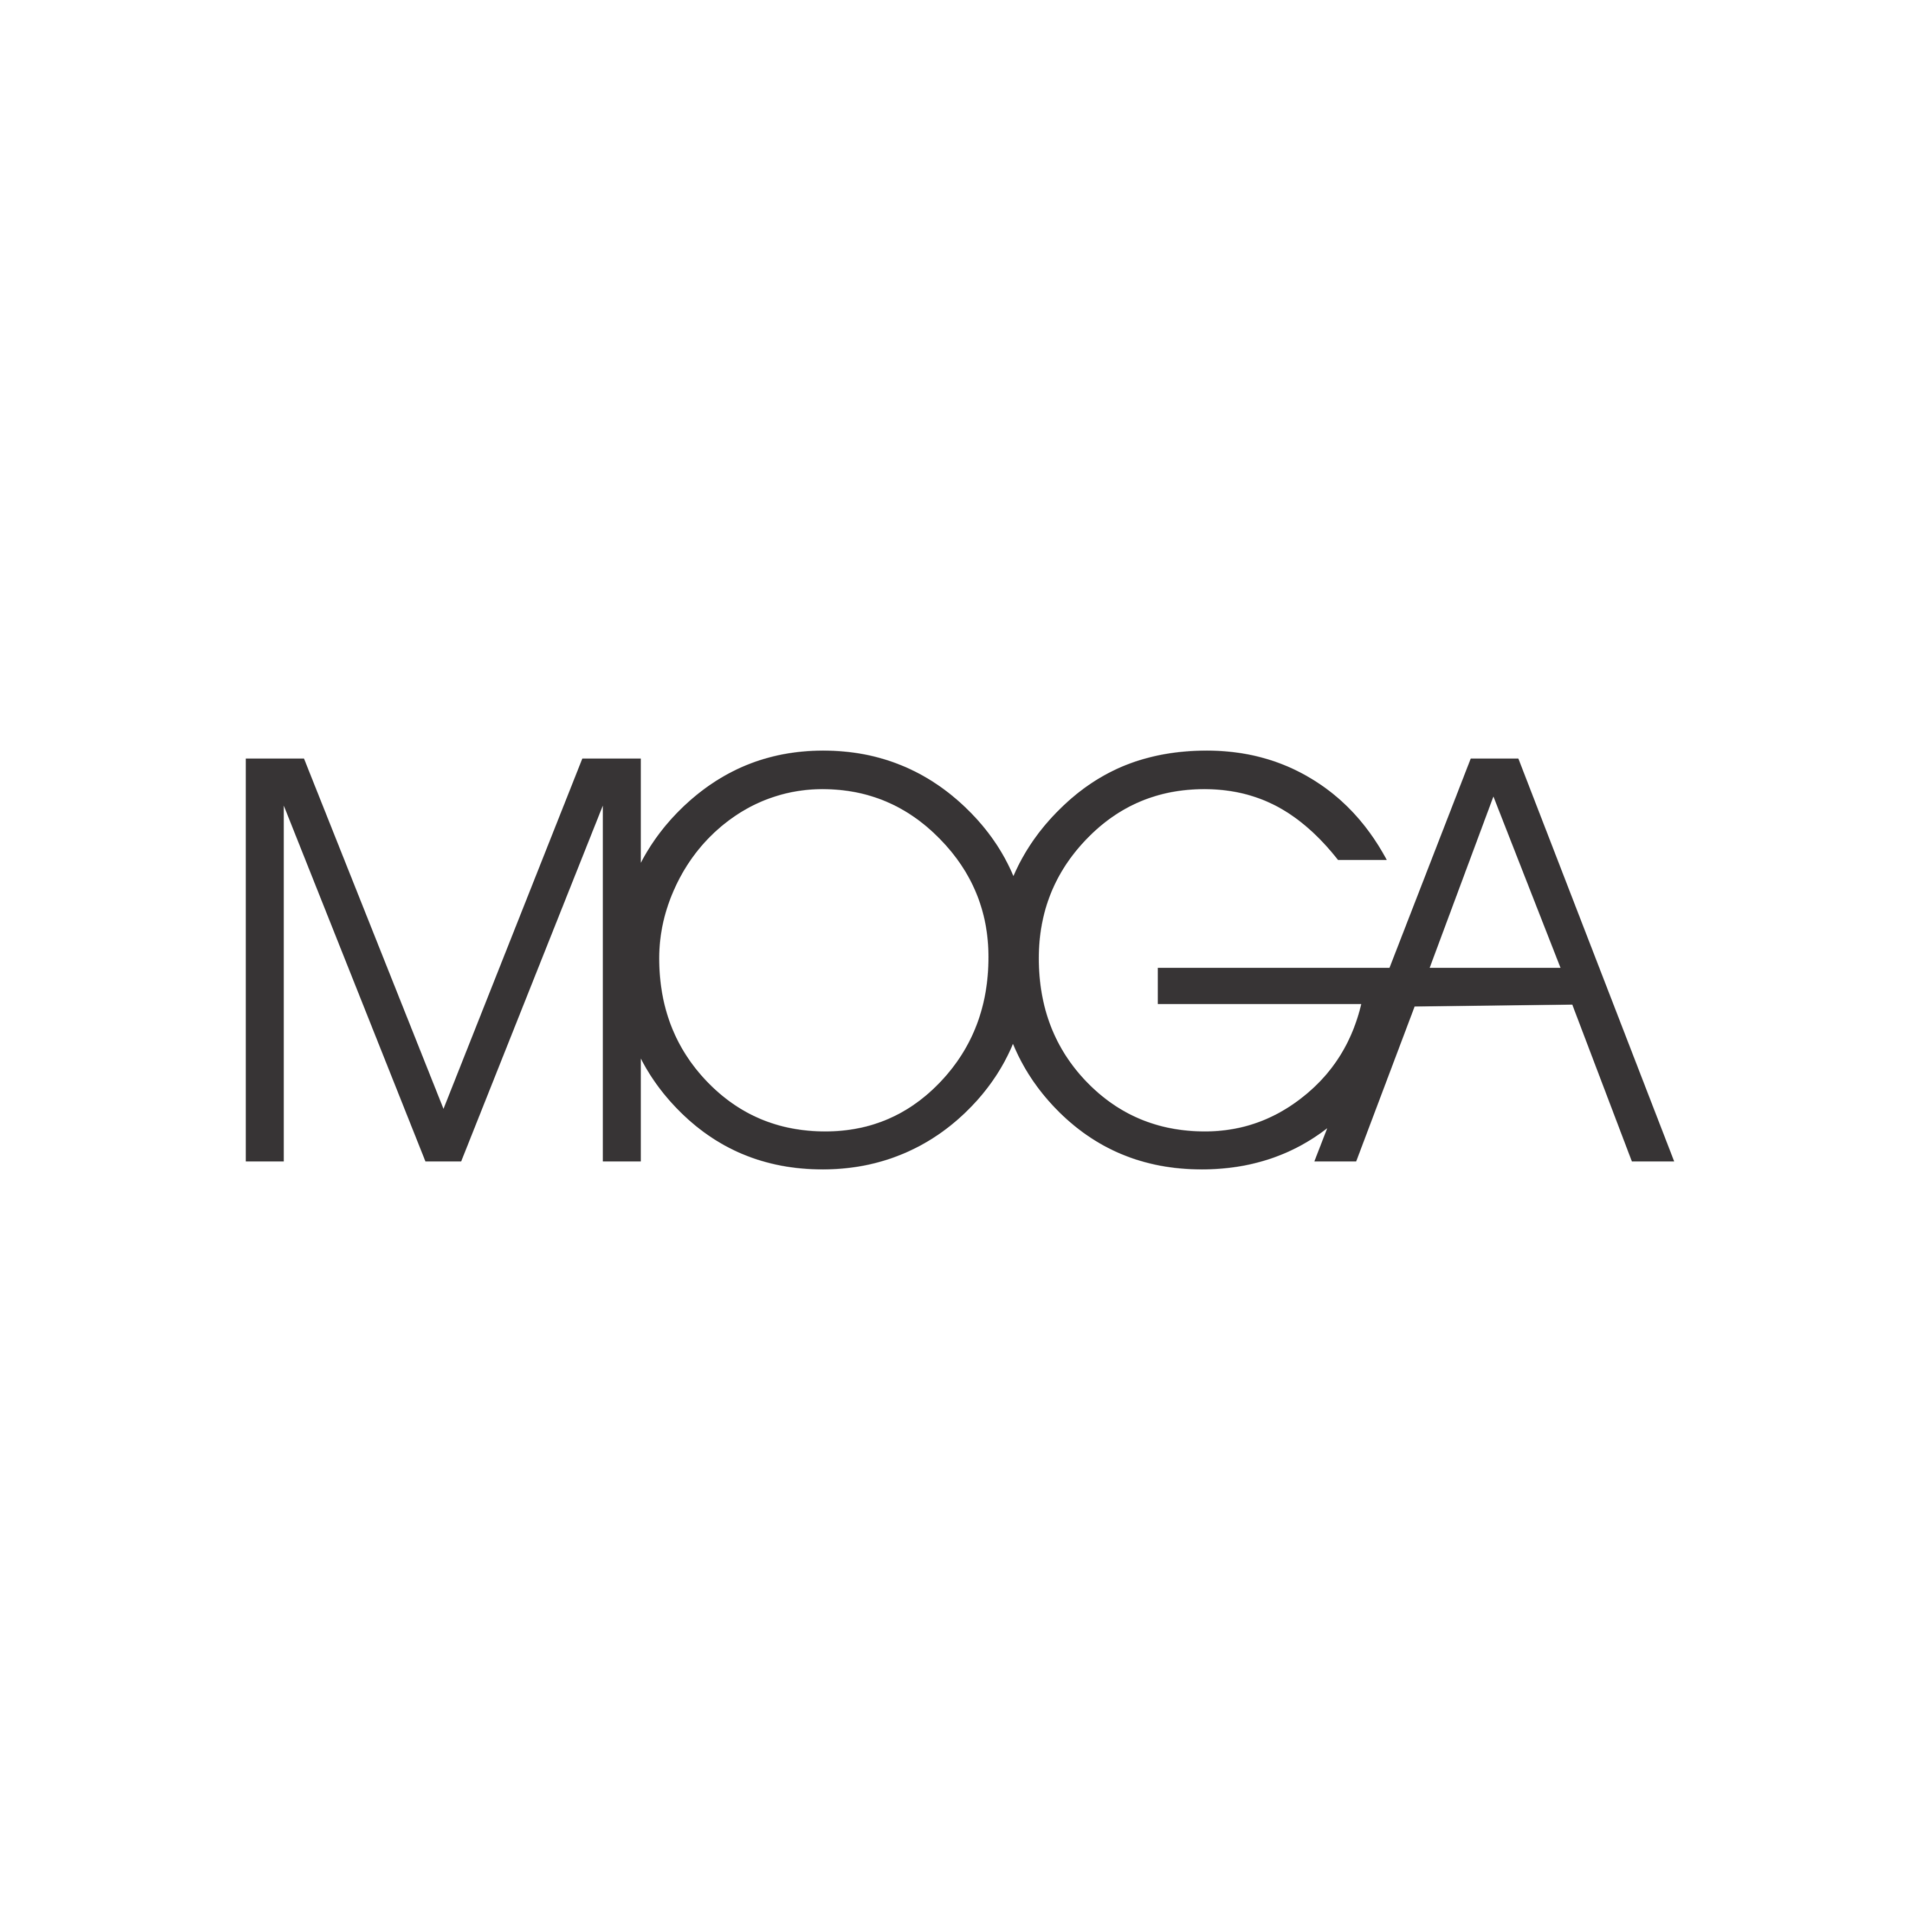 moga : Brand Short Description Type Here.